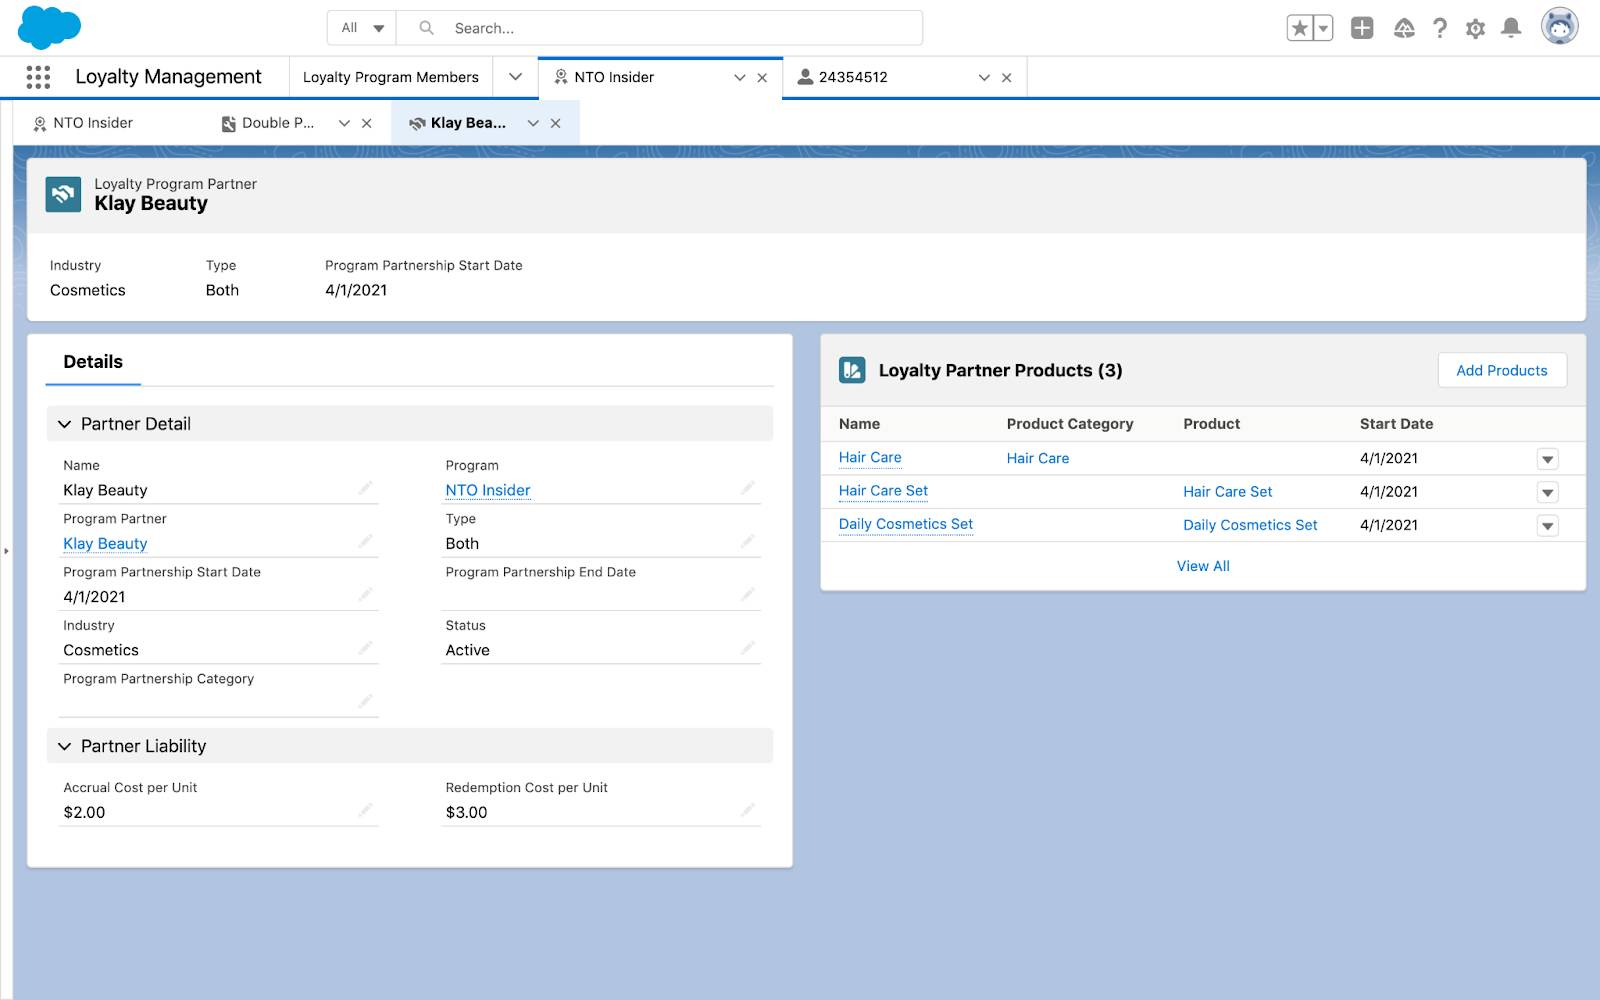 Partner Liability fields on a Partner record in Loyalty Management